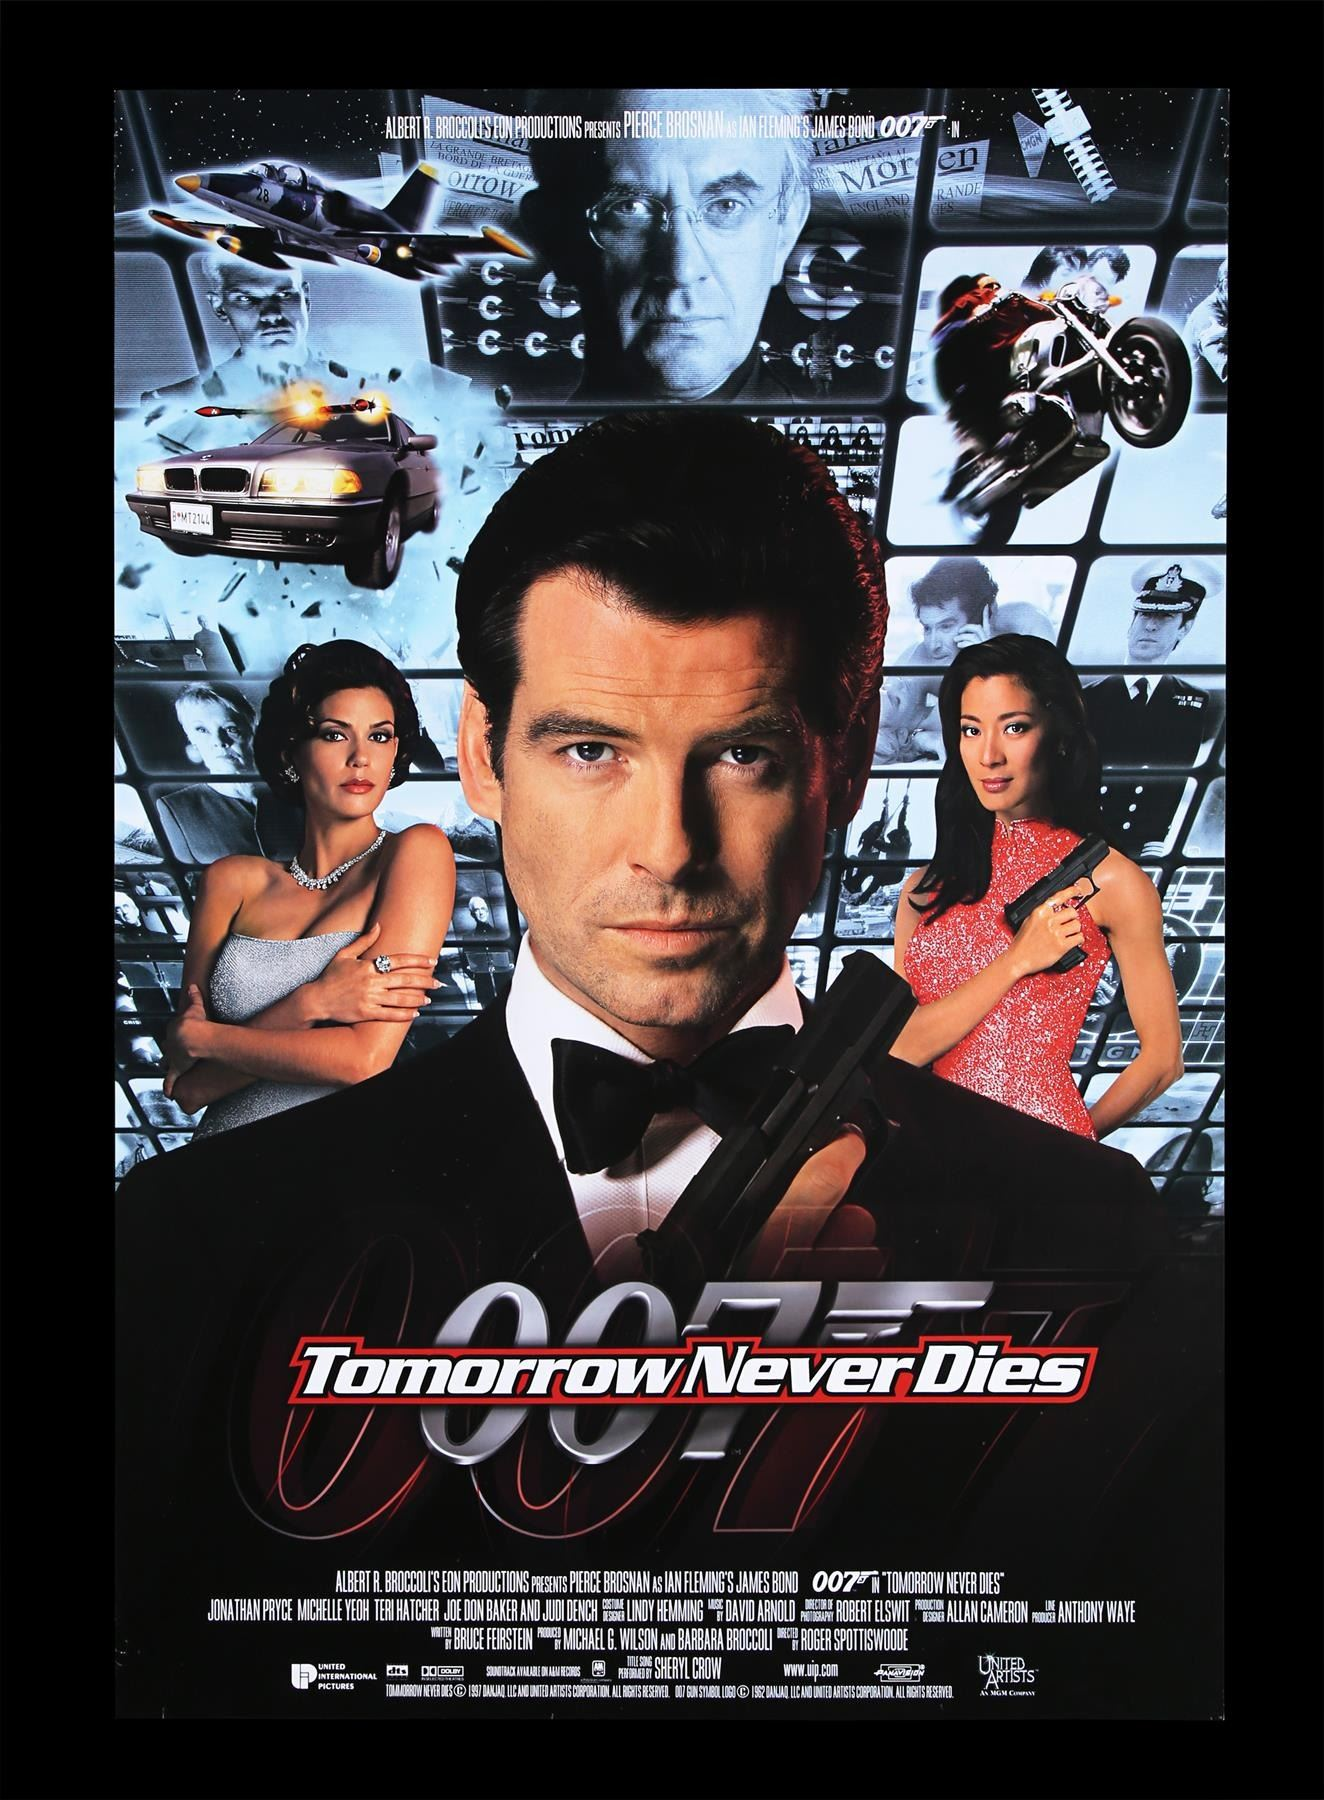 Tomorrow Never Dies 1997 Two Us One Sheet Posters One Misspelt And One Soundtrack Poster 19